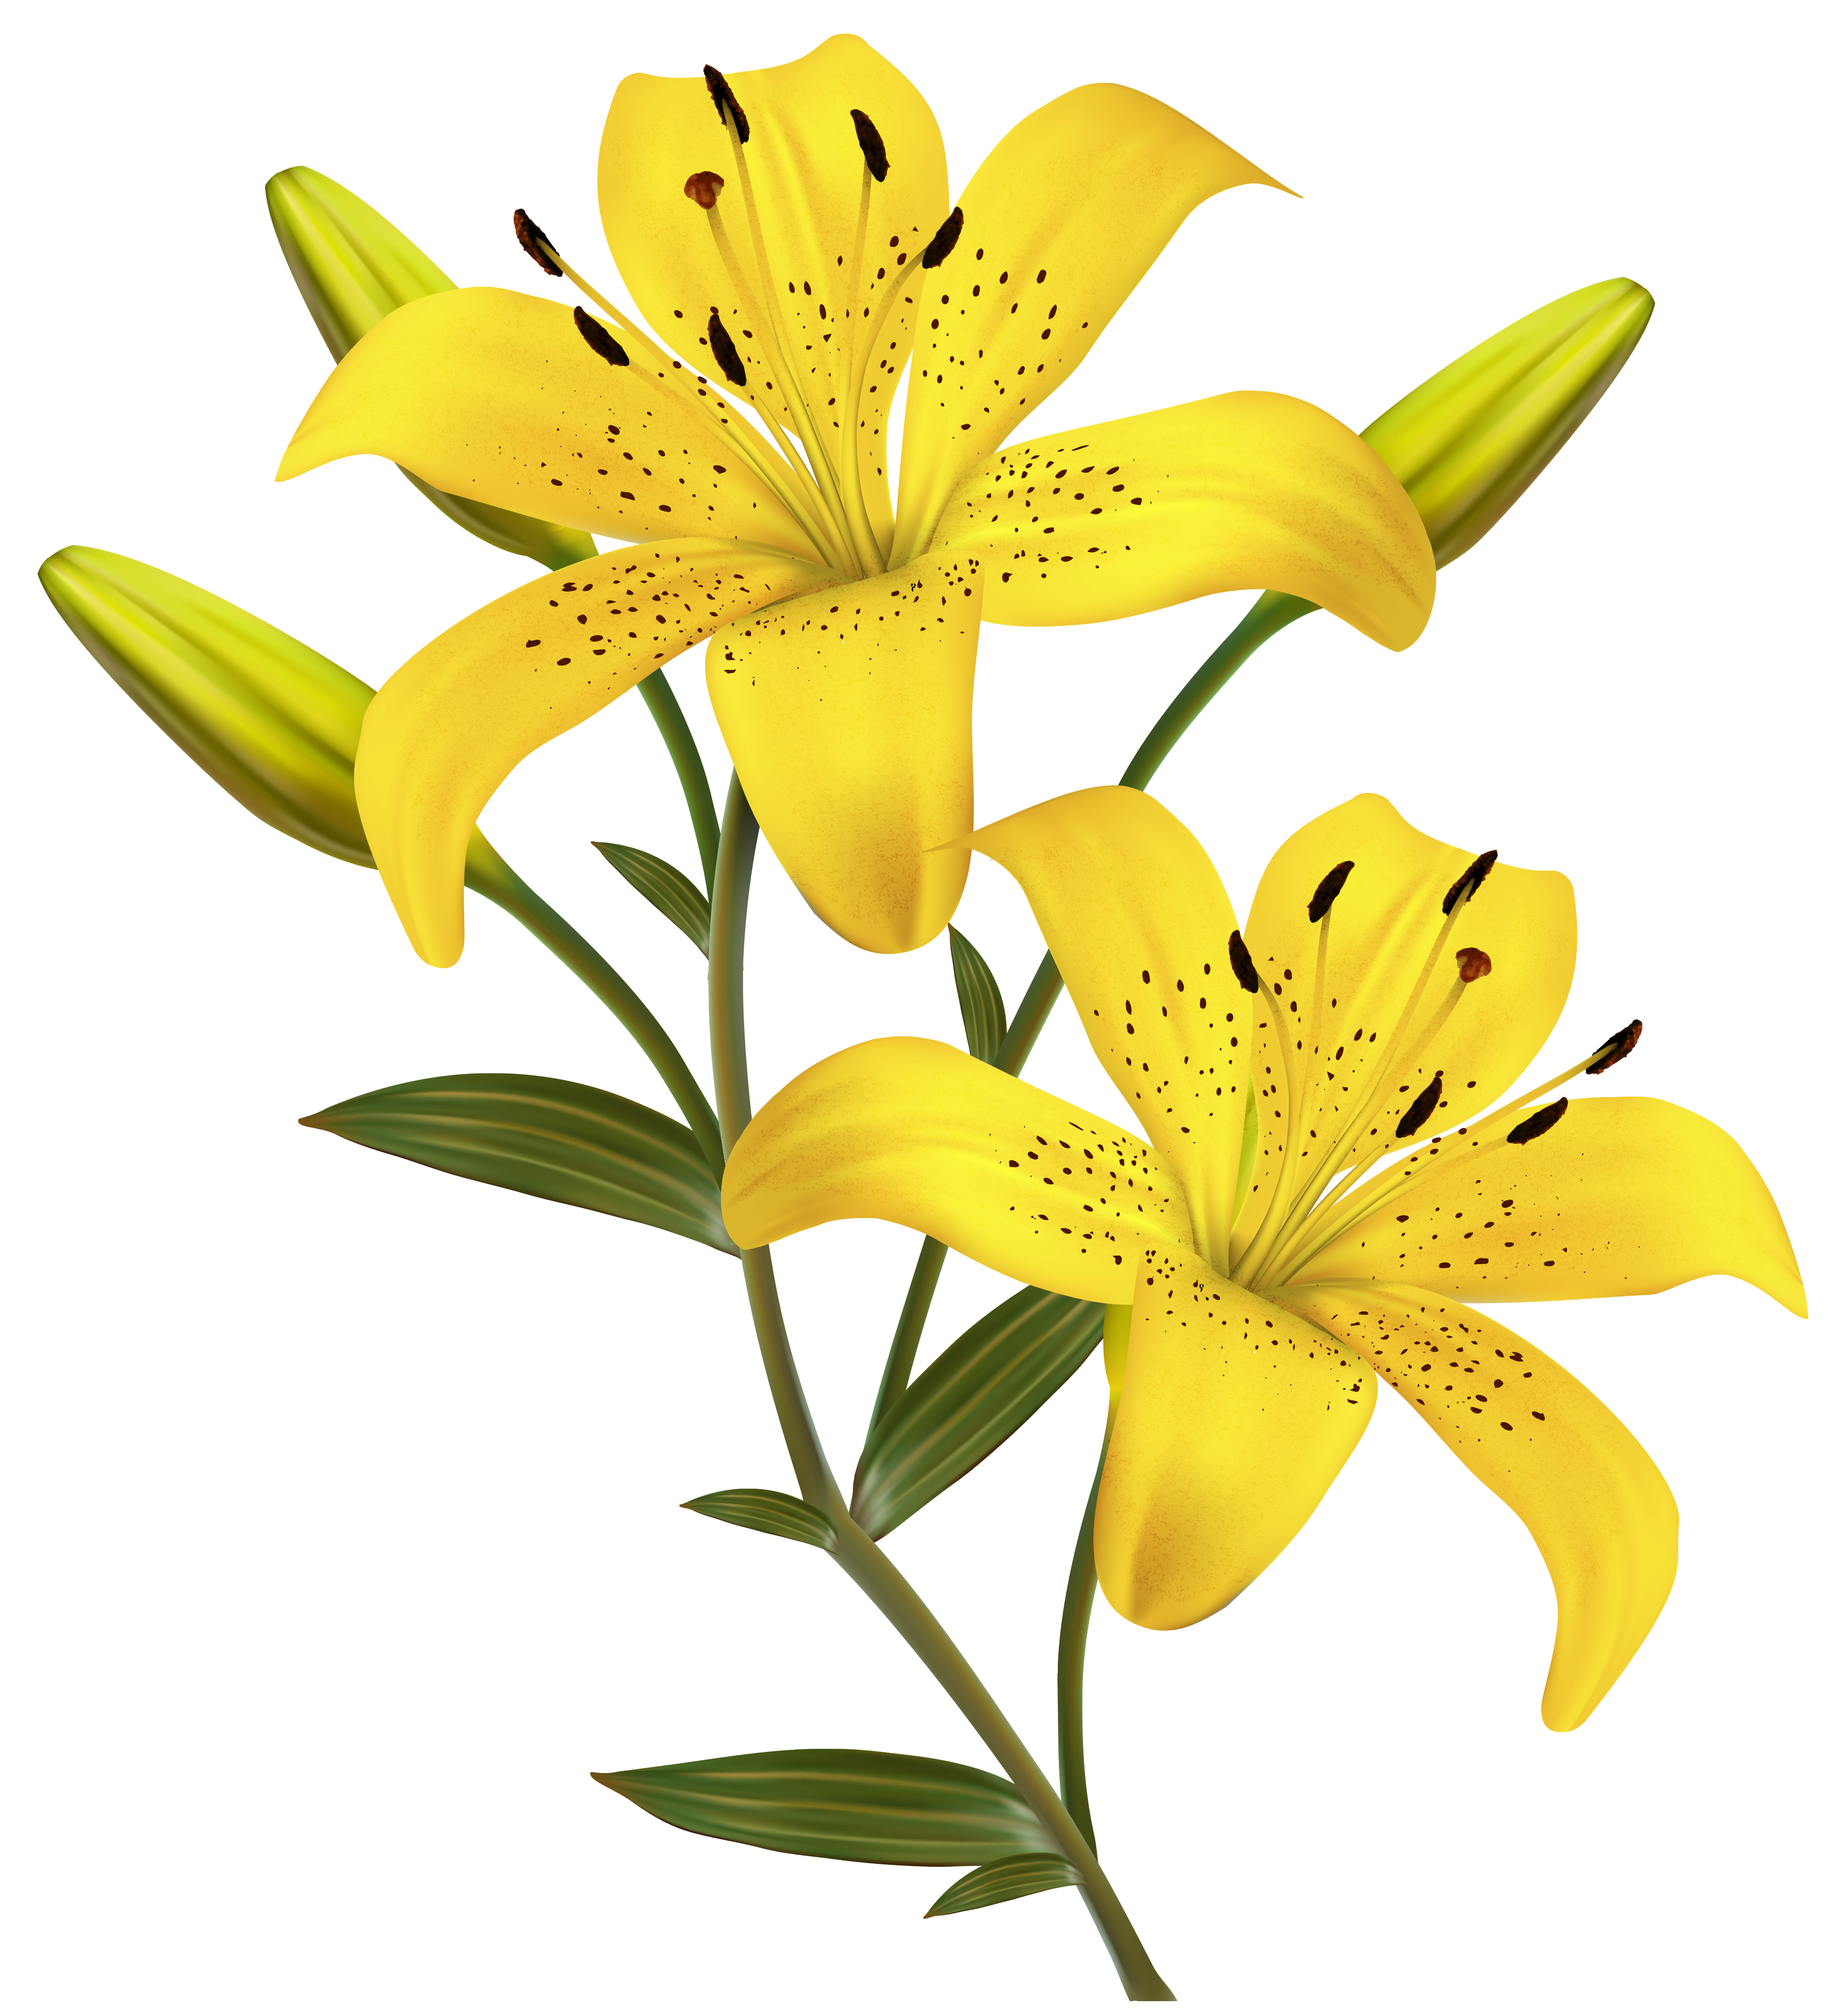 Transparent png clip art. Daffodil clipart lily vector transparent download